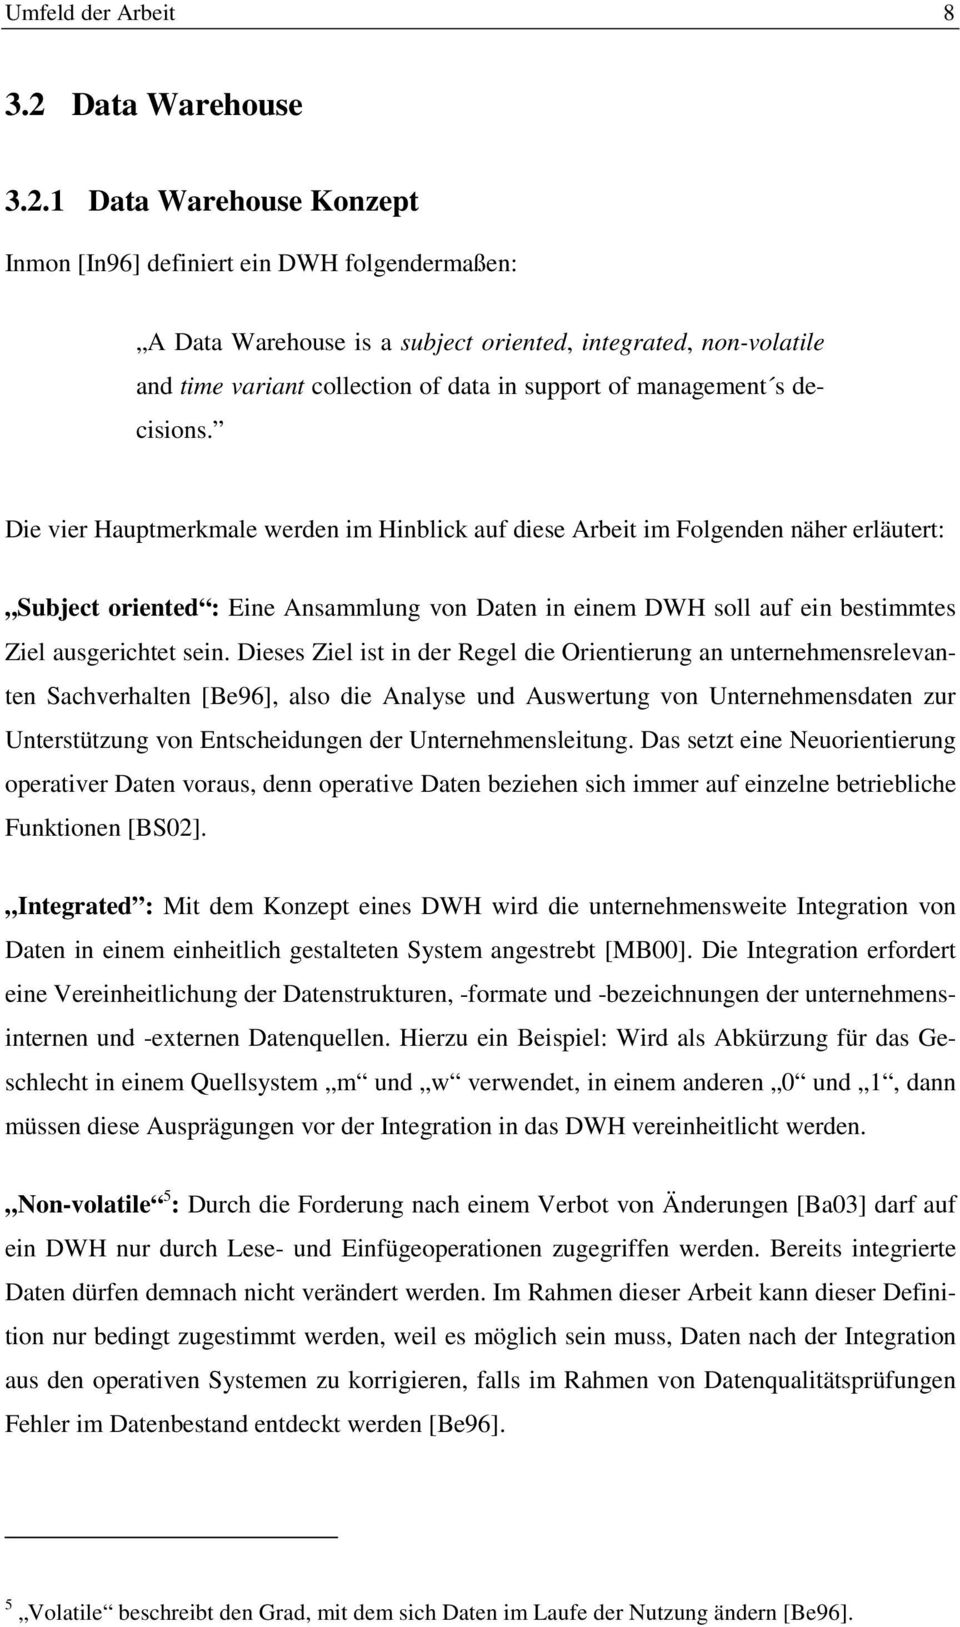 1 Data Warehouse Konzept Inmon [In96] definiert ein DWH folgendermaßen: A Data Warehouse is a subject oriented, integrated, non-volatile and time variant collection of data in support of management s